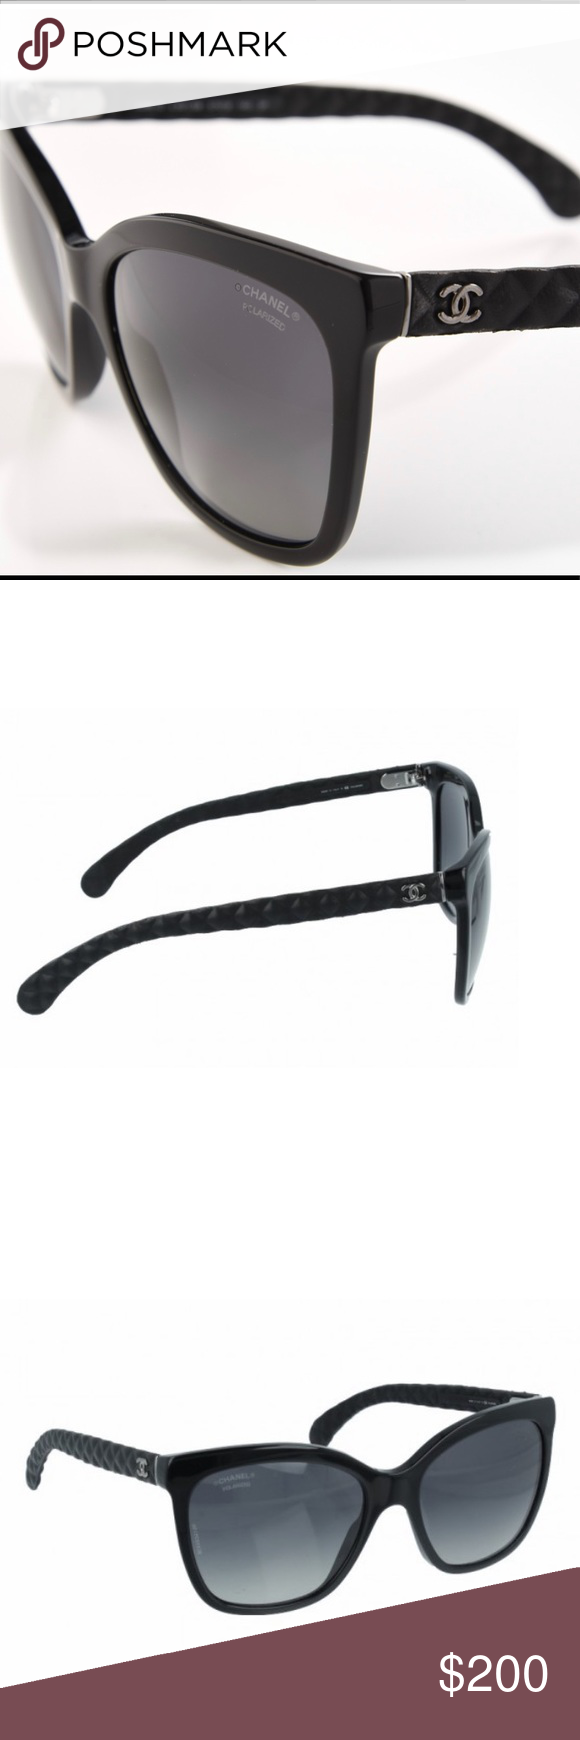 1c7e88d6db589 CHANEL SUNGLASSES! Authentic only. Real Chanel sunglasses. Perfect shape.  Polarized. Comes